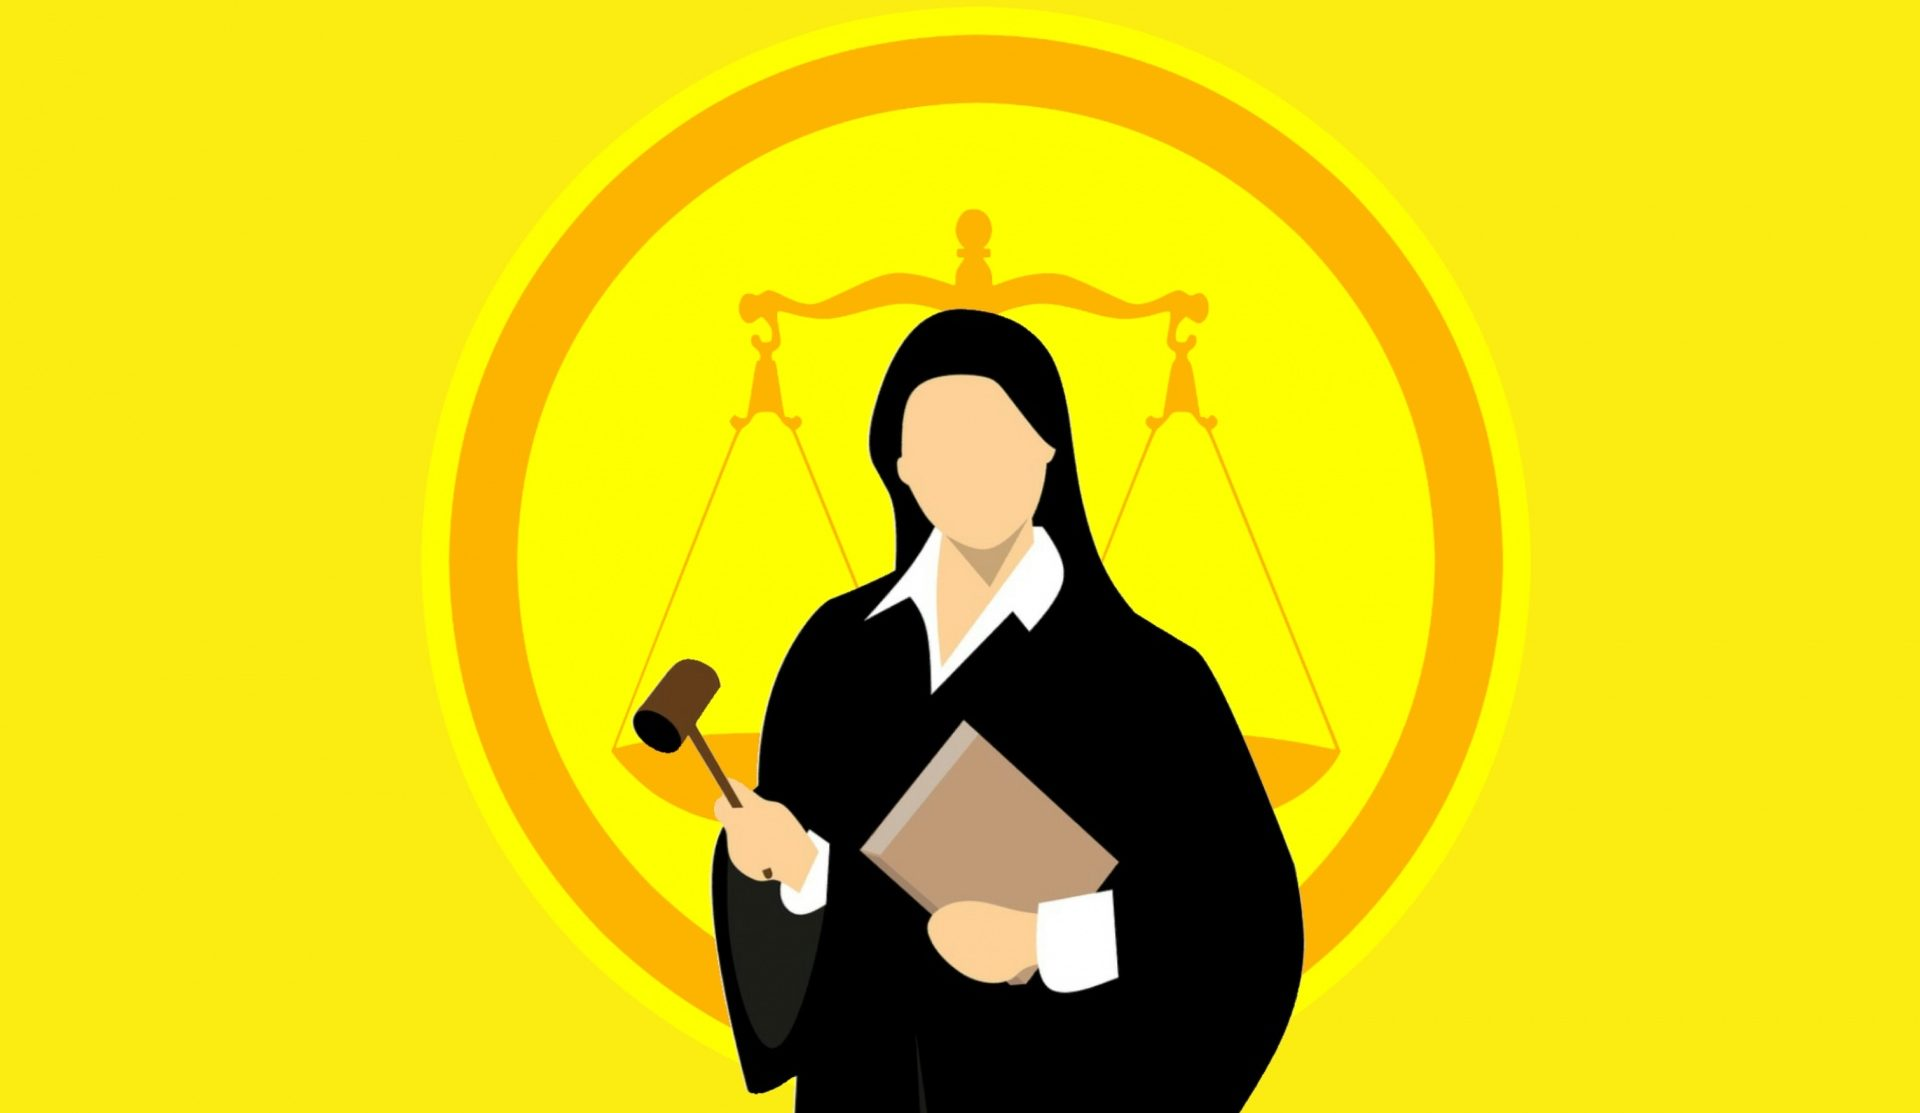 woman-in-lawsuit-judge